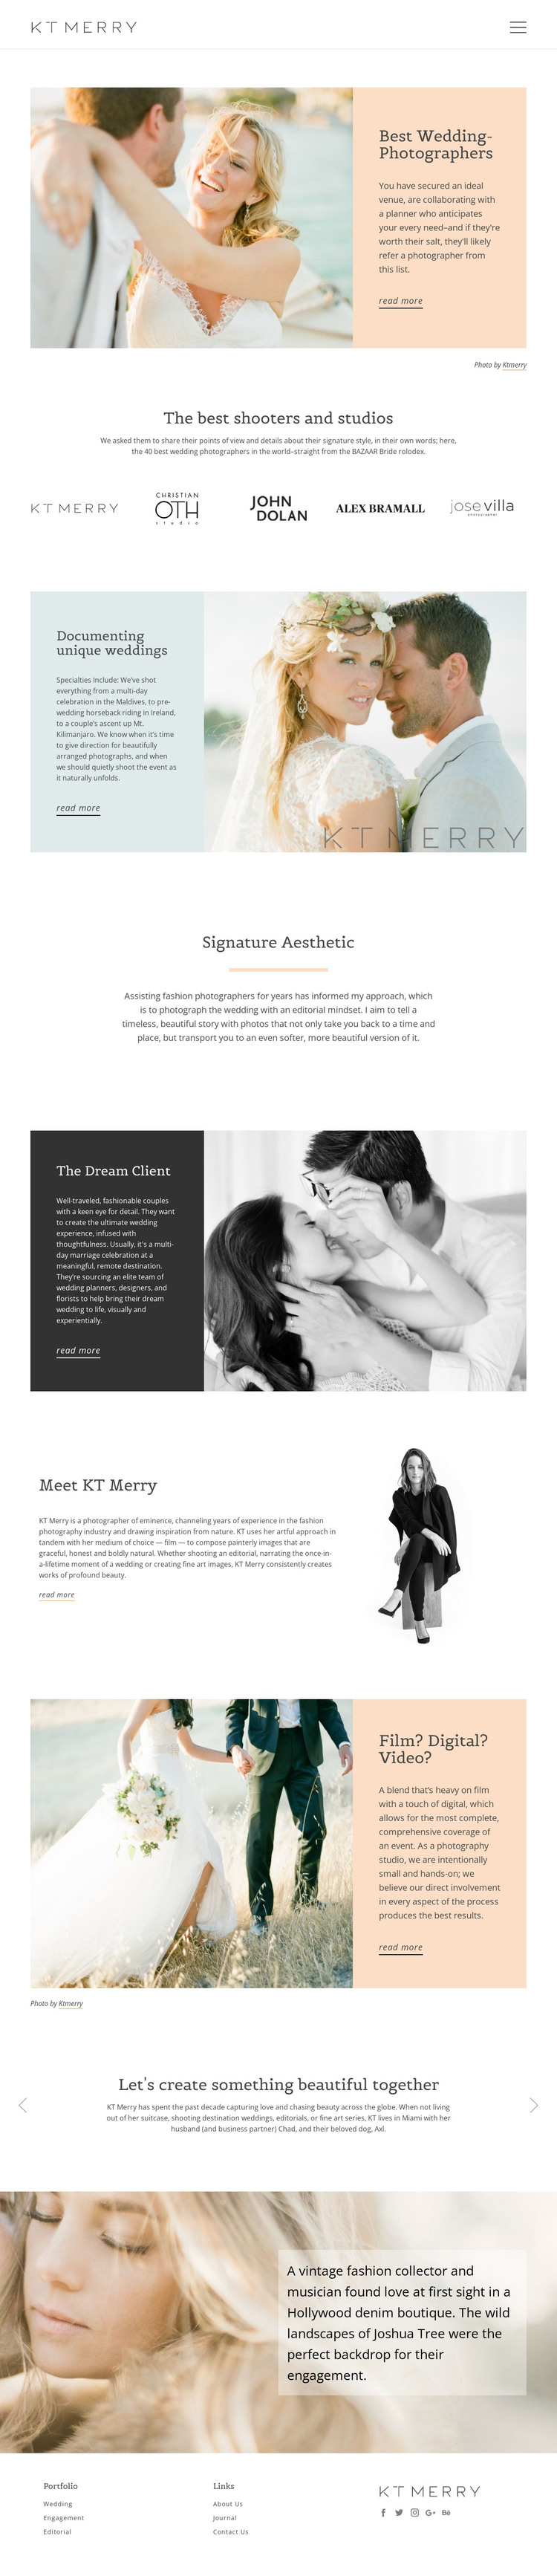 Shooters for special wedding Web Design